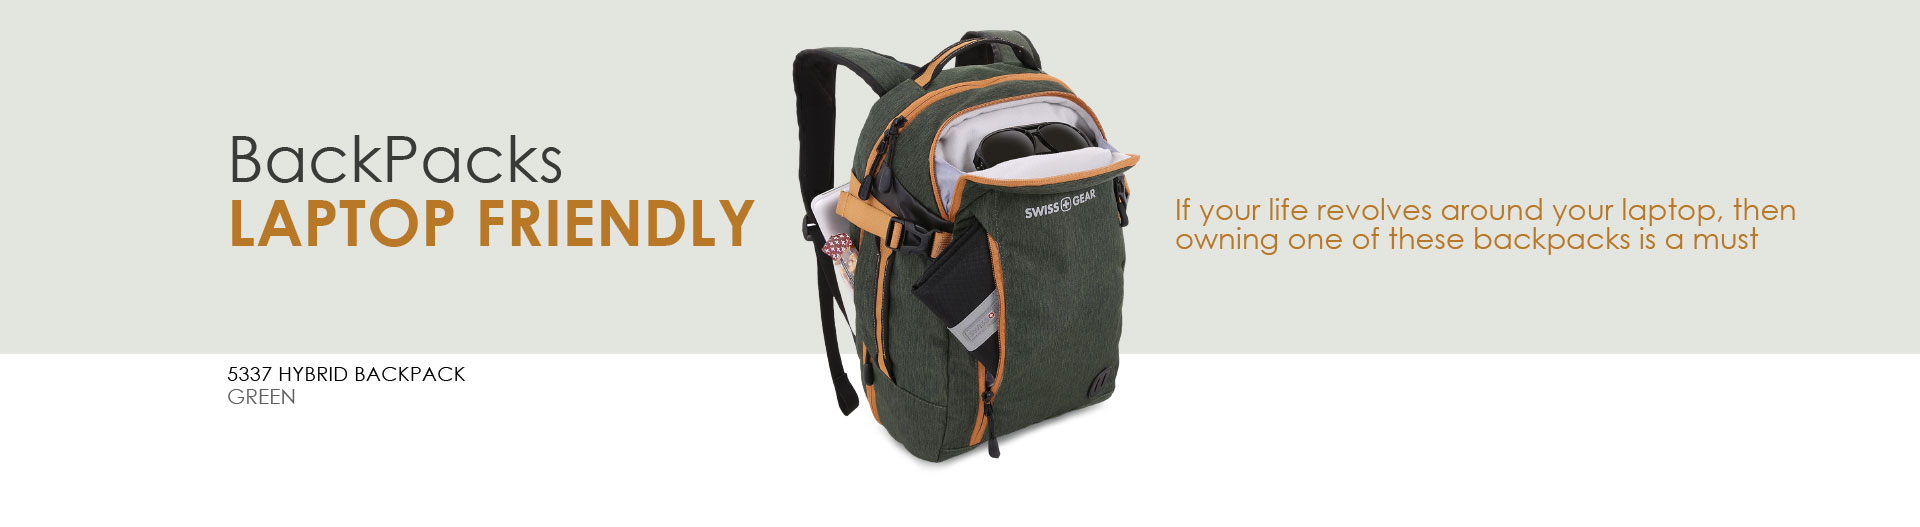 Swissgear Laptop Friendly Backpacks